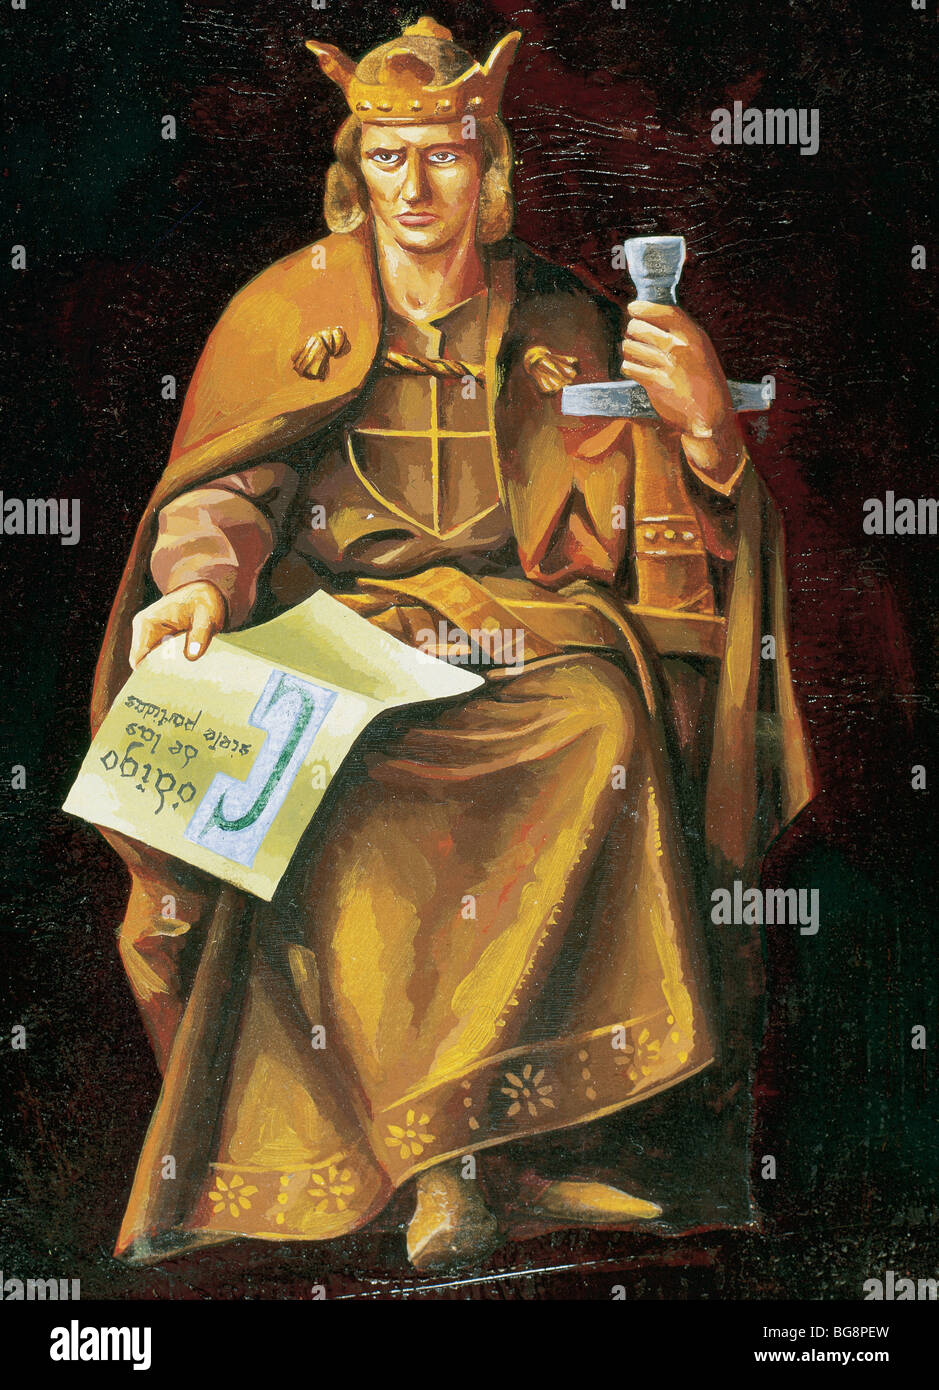 ALFONSO X of Castile 'the Wise (Toledo ,1221-Seville, 1284). King of Castile and Leon (1252-1284). - Stock Image